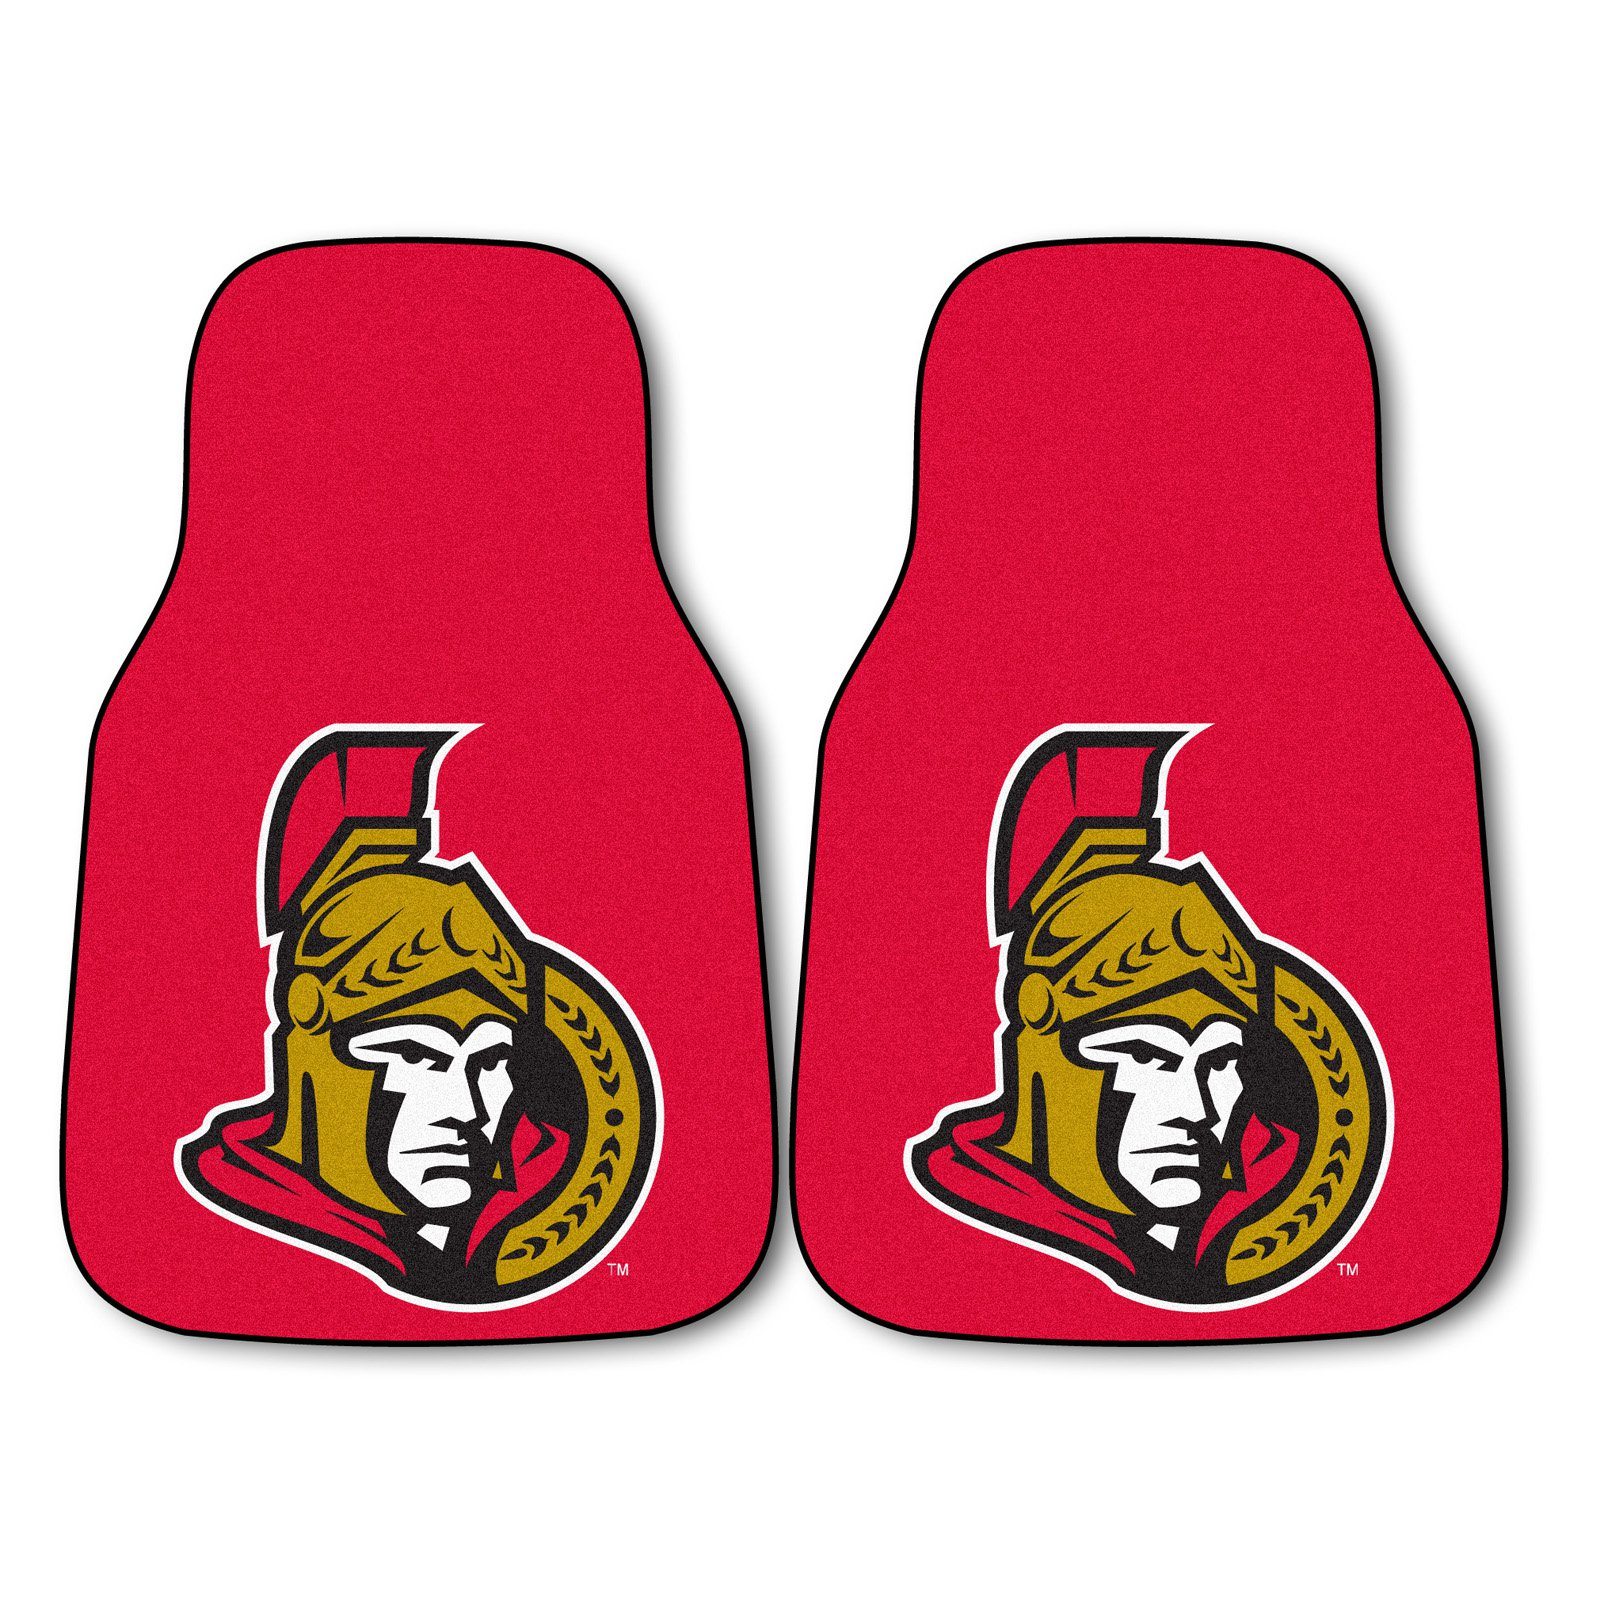 Ottawa Senators 2-Piece Printed Carpet Car Mat Set